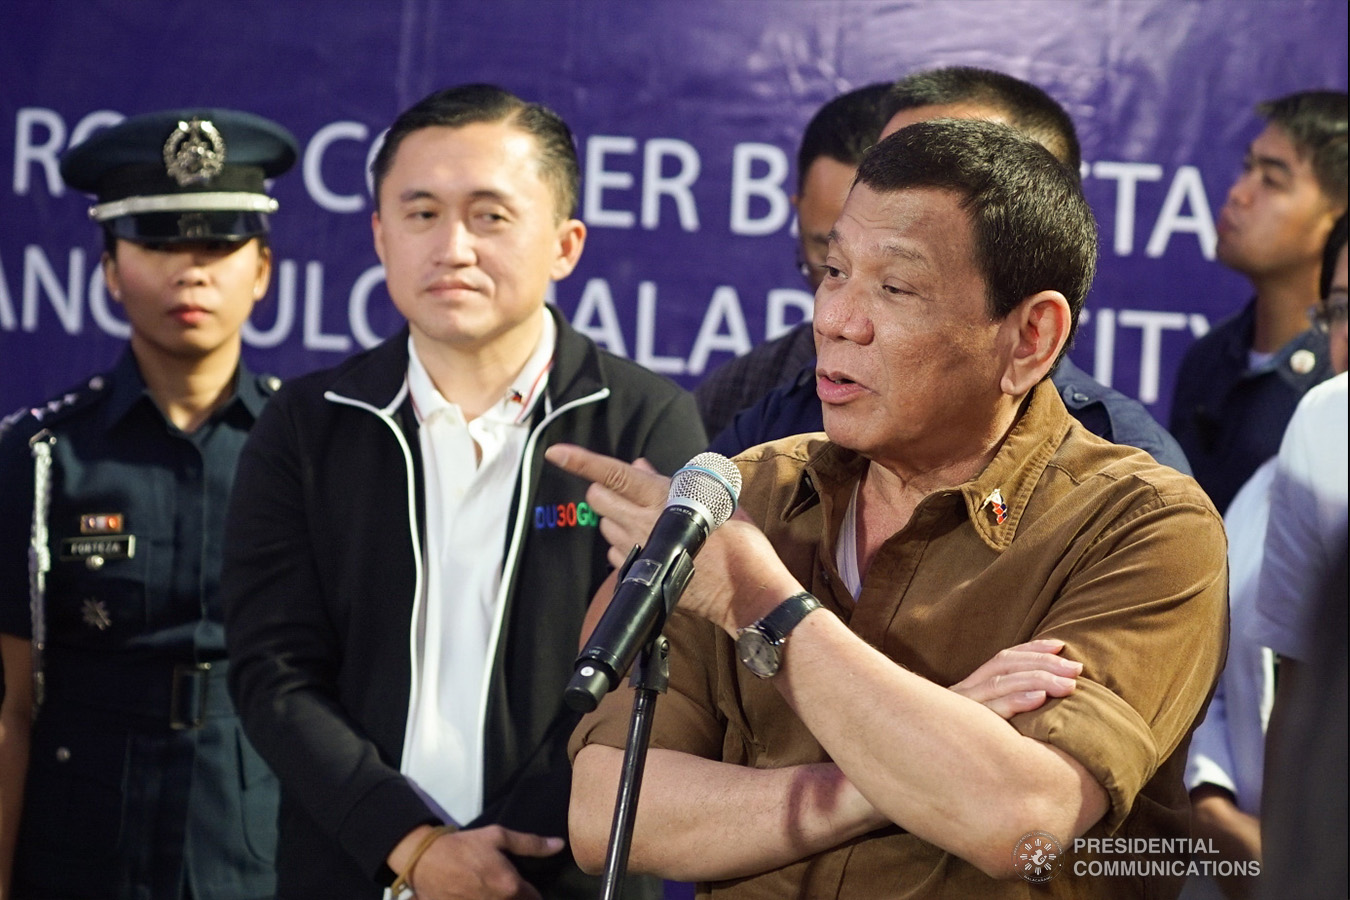 President Rodrigo Roa Duterte answers questions from members of the media after leading the groundbreaking ceremony for the construction of the San Lorenzo Ruiz General Hospital (SLRGH) in Malabon City on January 29, 2019. RENE LUMAWAG/PRESIDENTIAL PHOTO